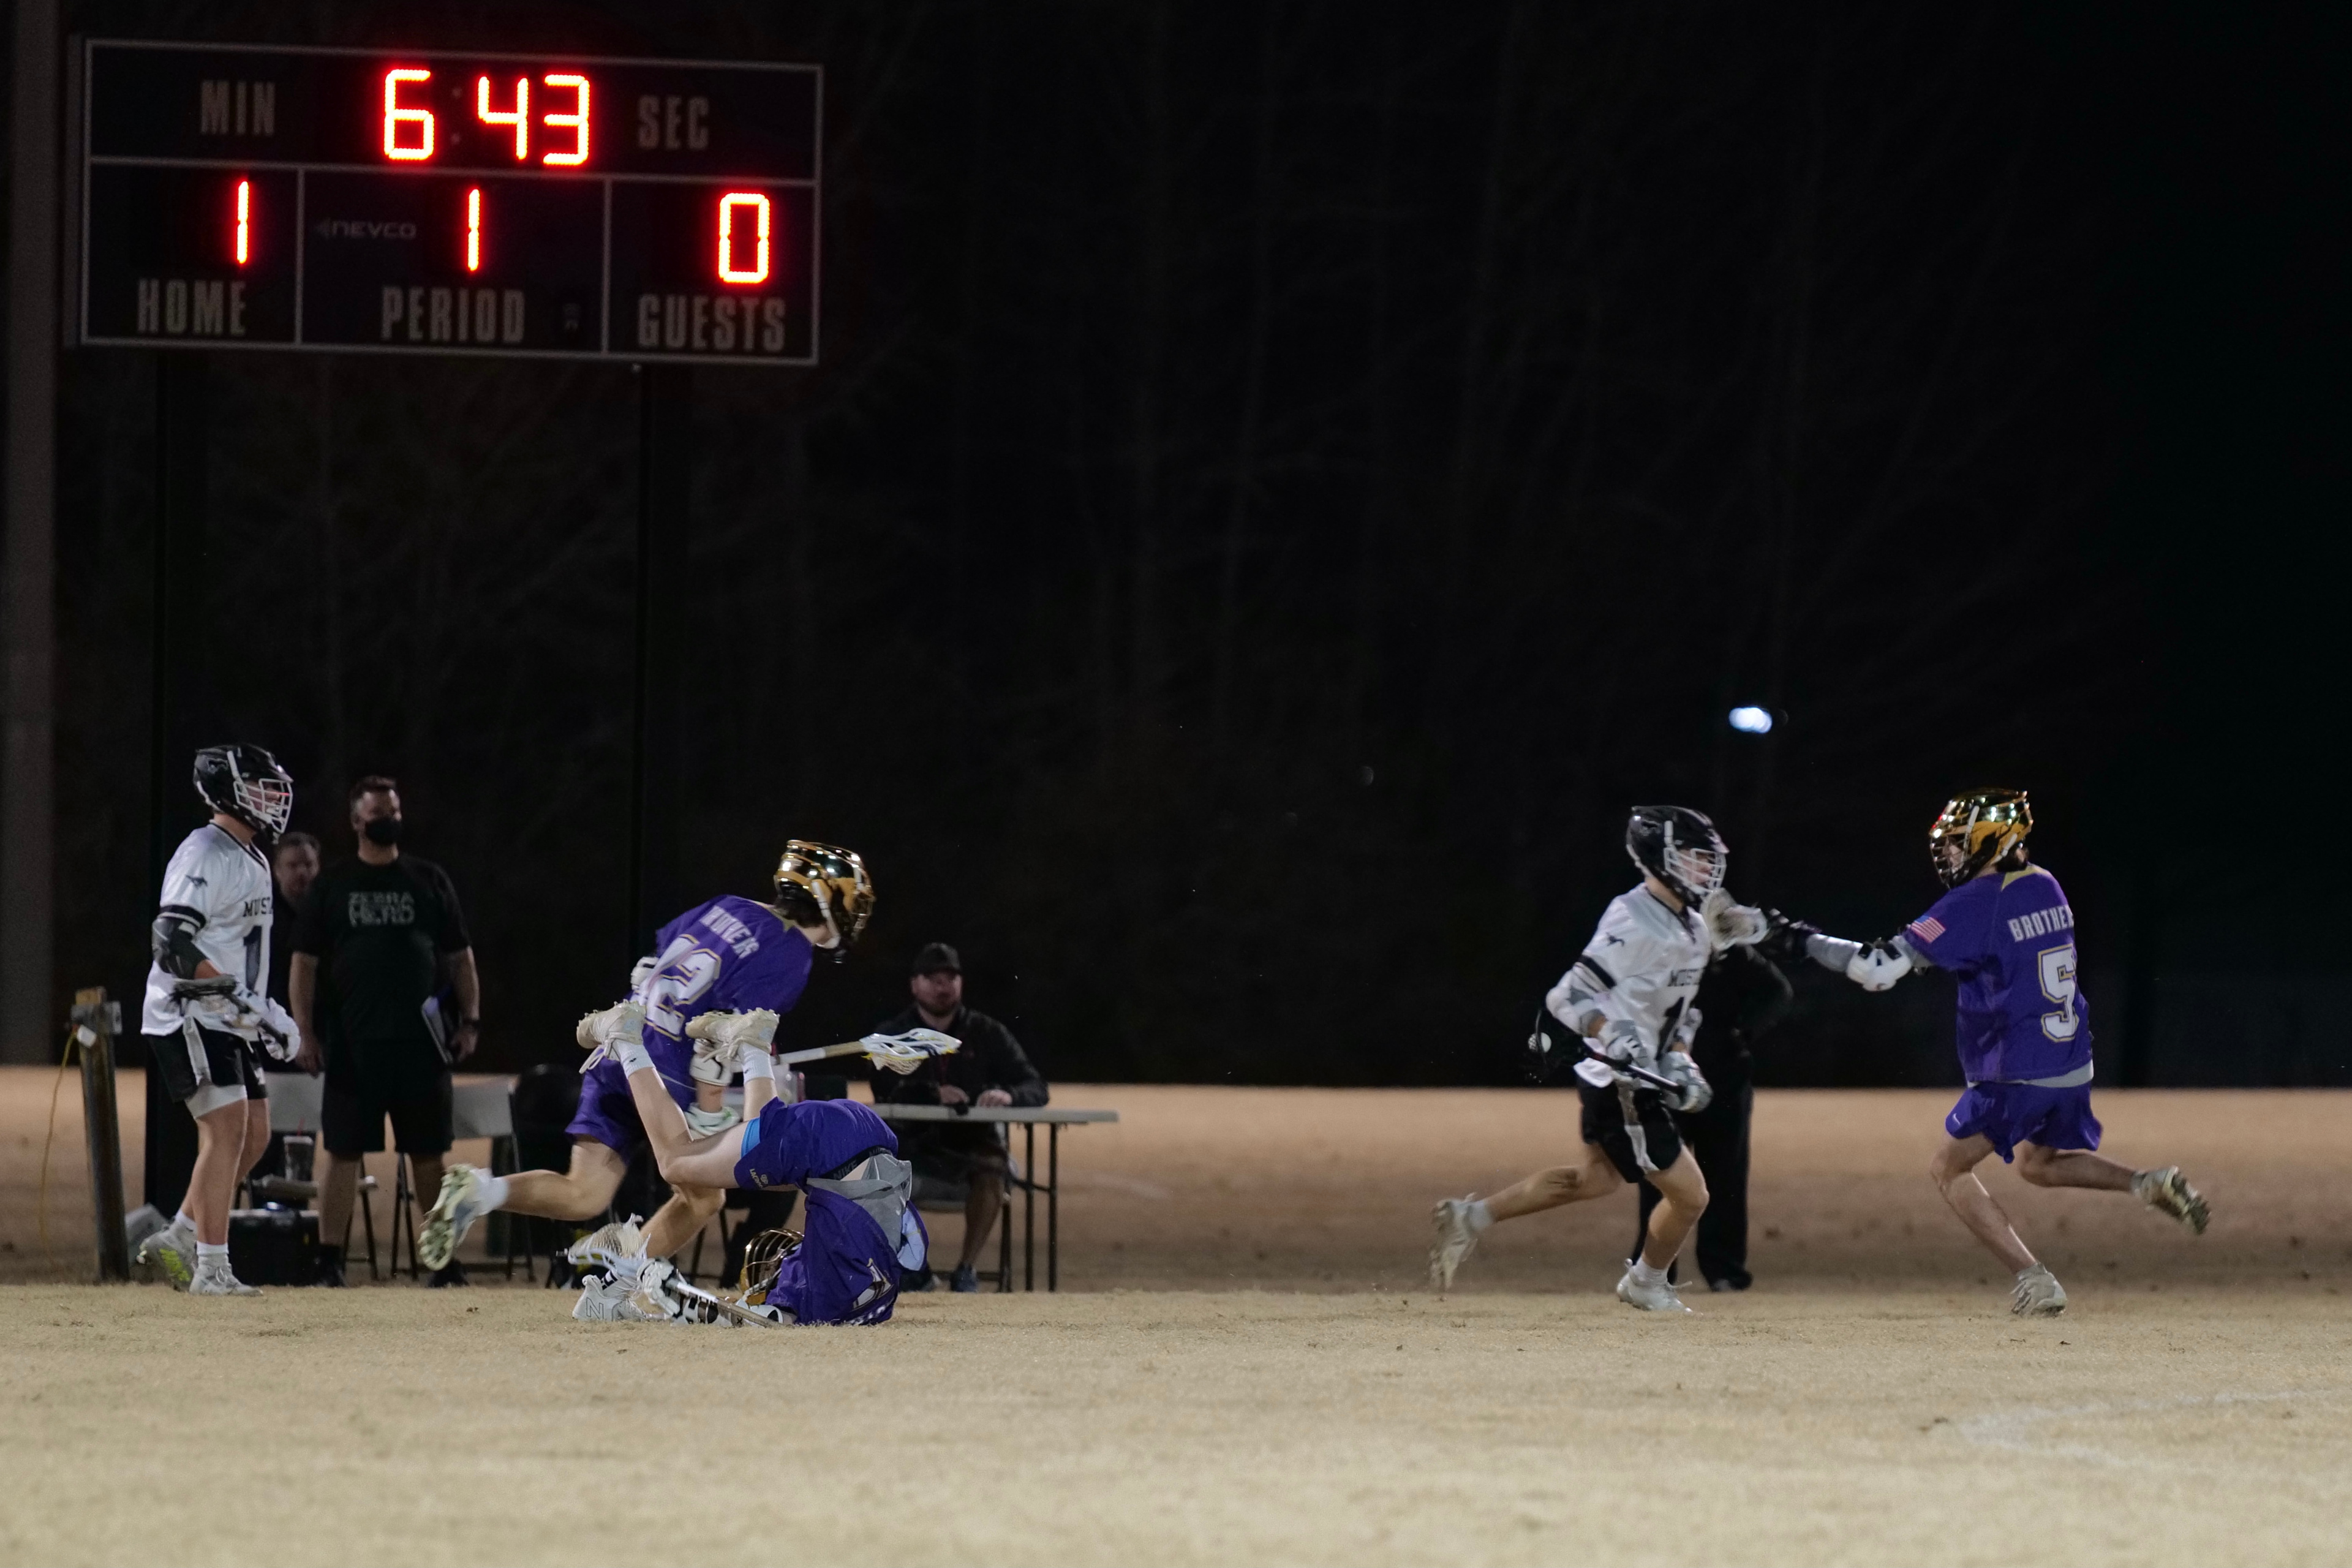 031121 - CBHS at HHS B JV